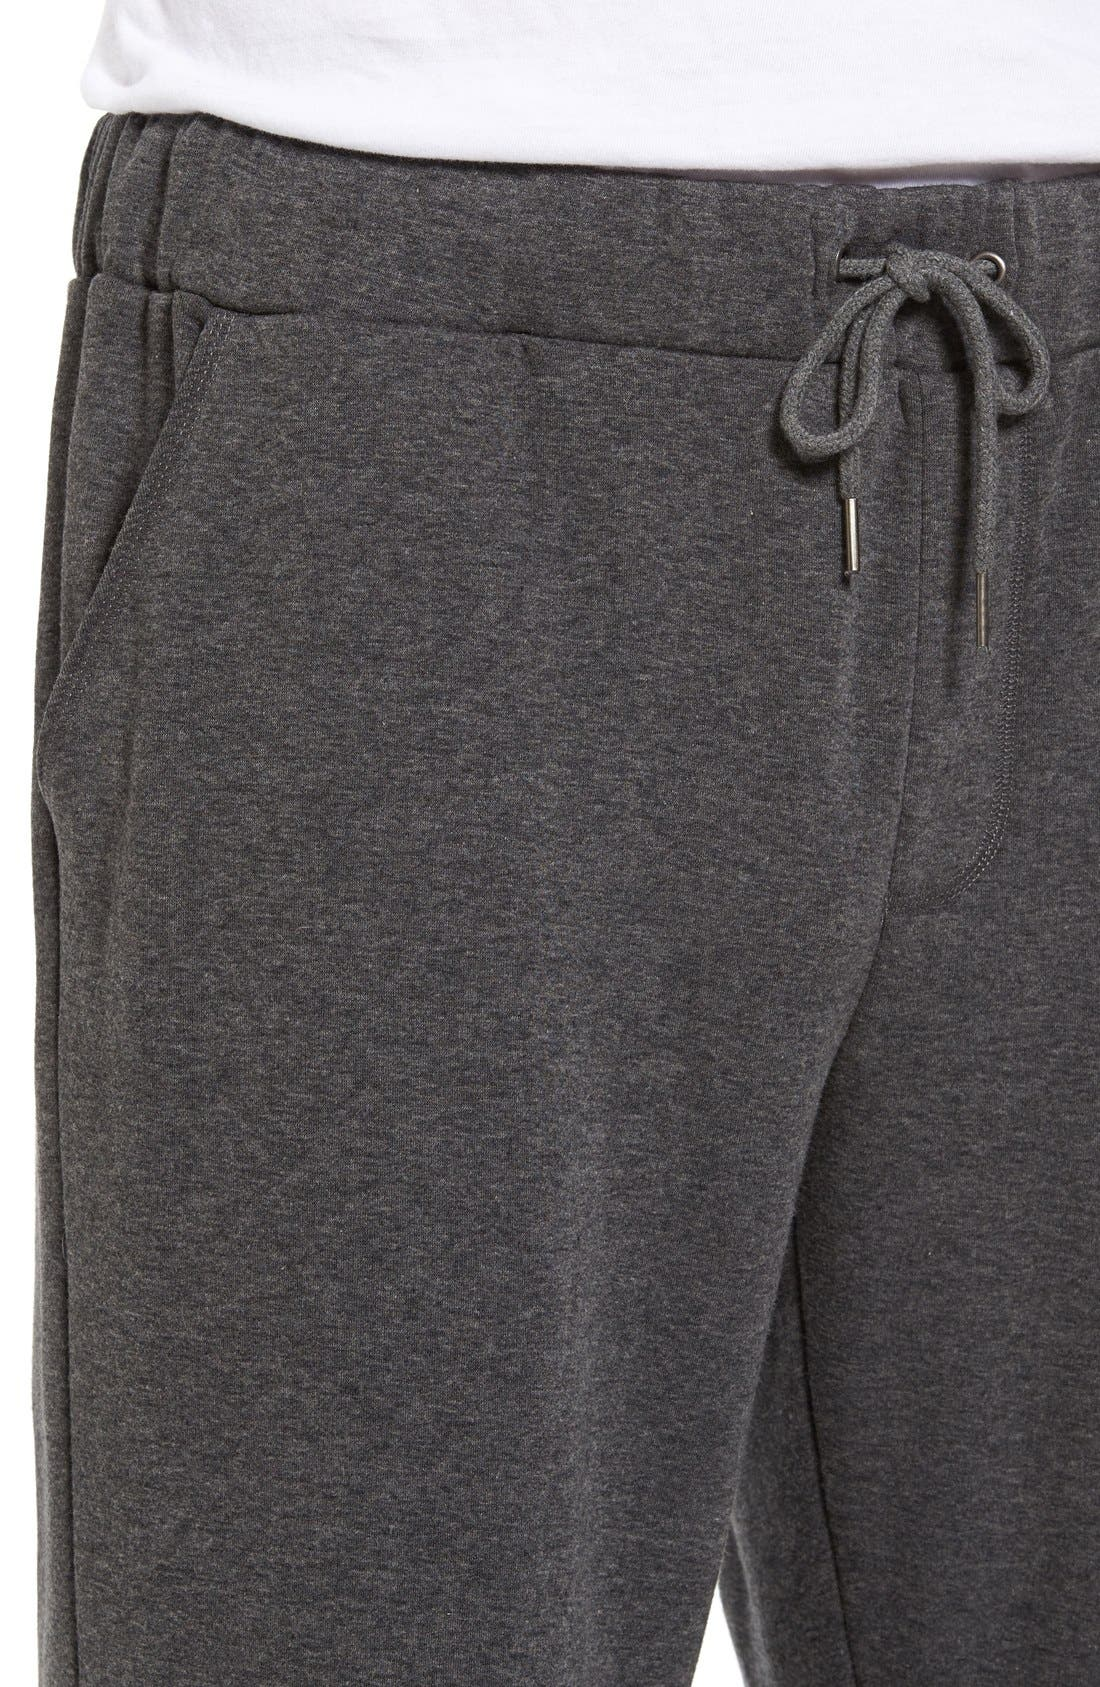 Fleece Lounge Pants,                             Alternate thumbnail 4, color,                             Grey Heather